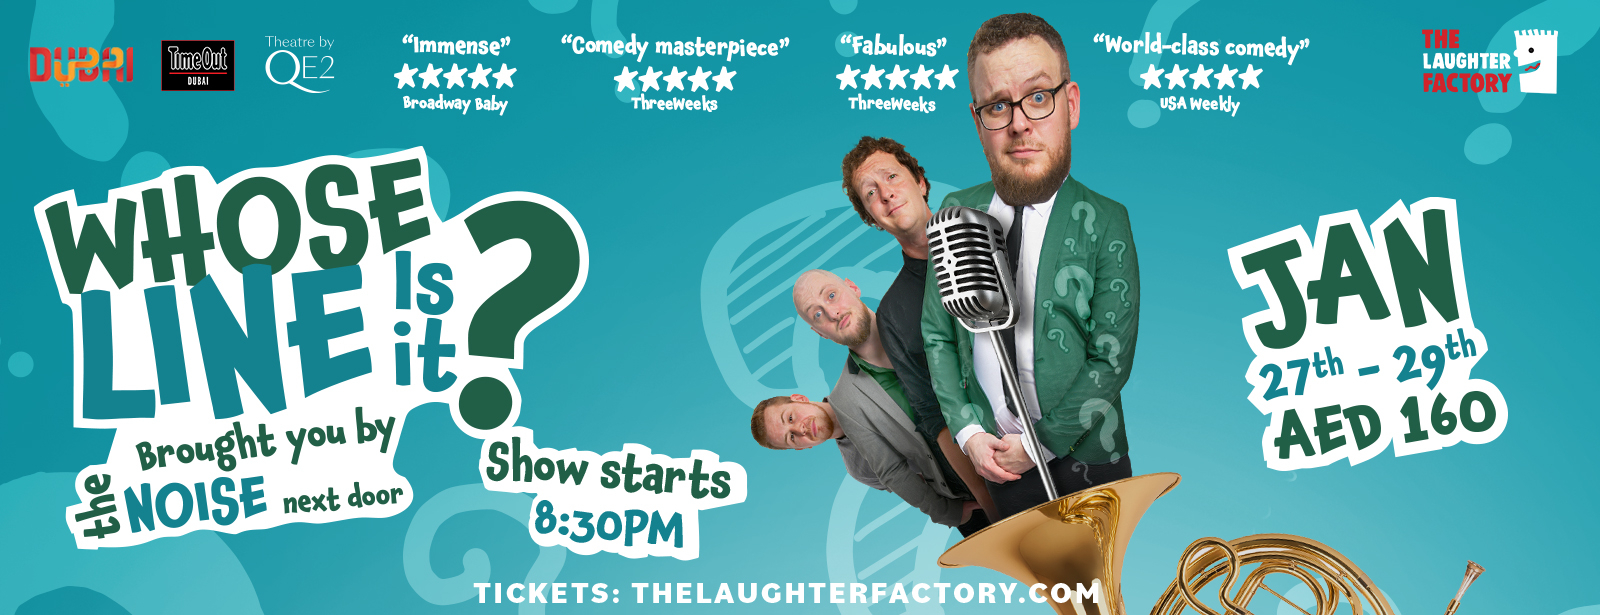 Whose Line Is It? Brought To You By The Noise Next Door - MOVENPICK JBR Show - RESCHEDULED DATE